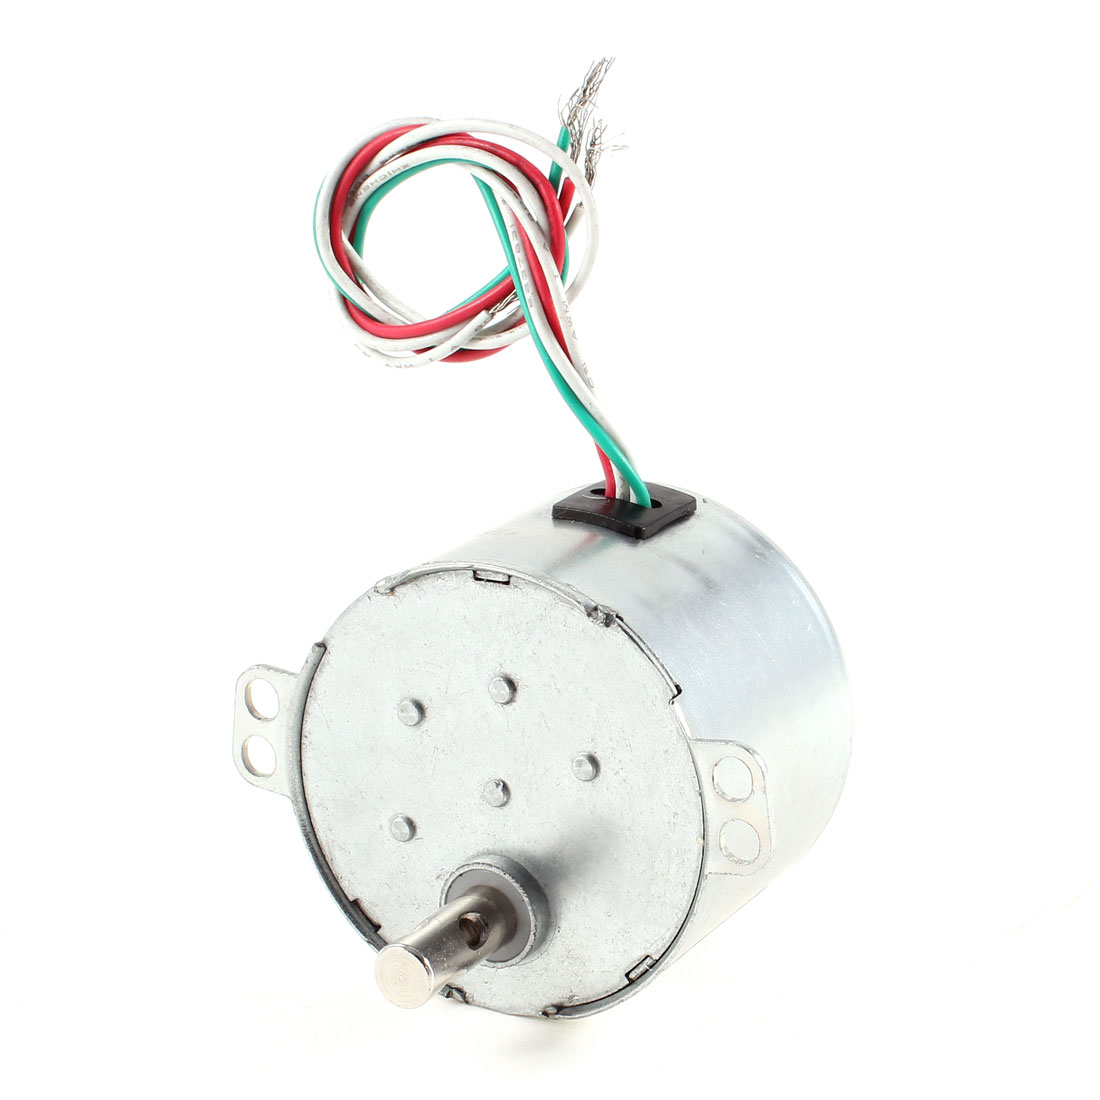 "AC 220V 8.7RPM Synchronous Electric Gear Box Motor 1.9"" Dia"